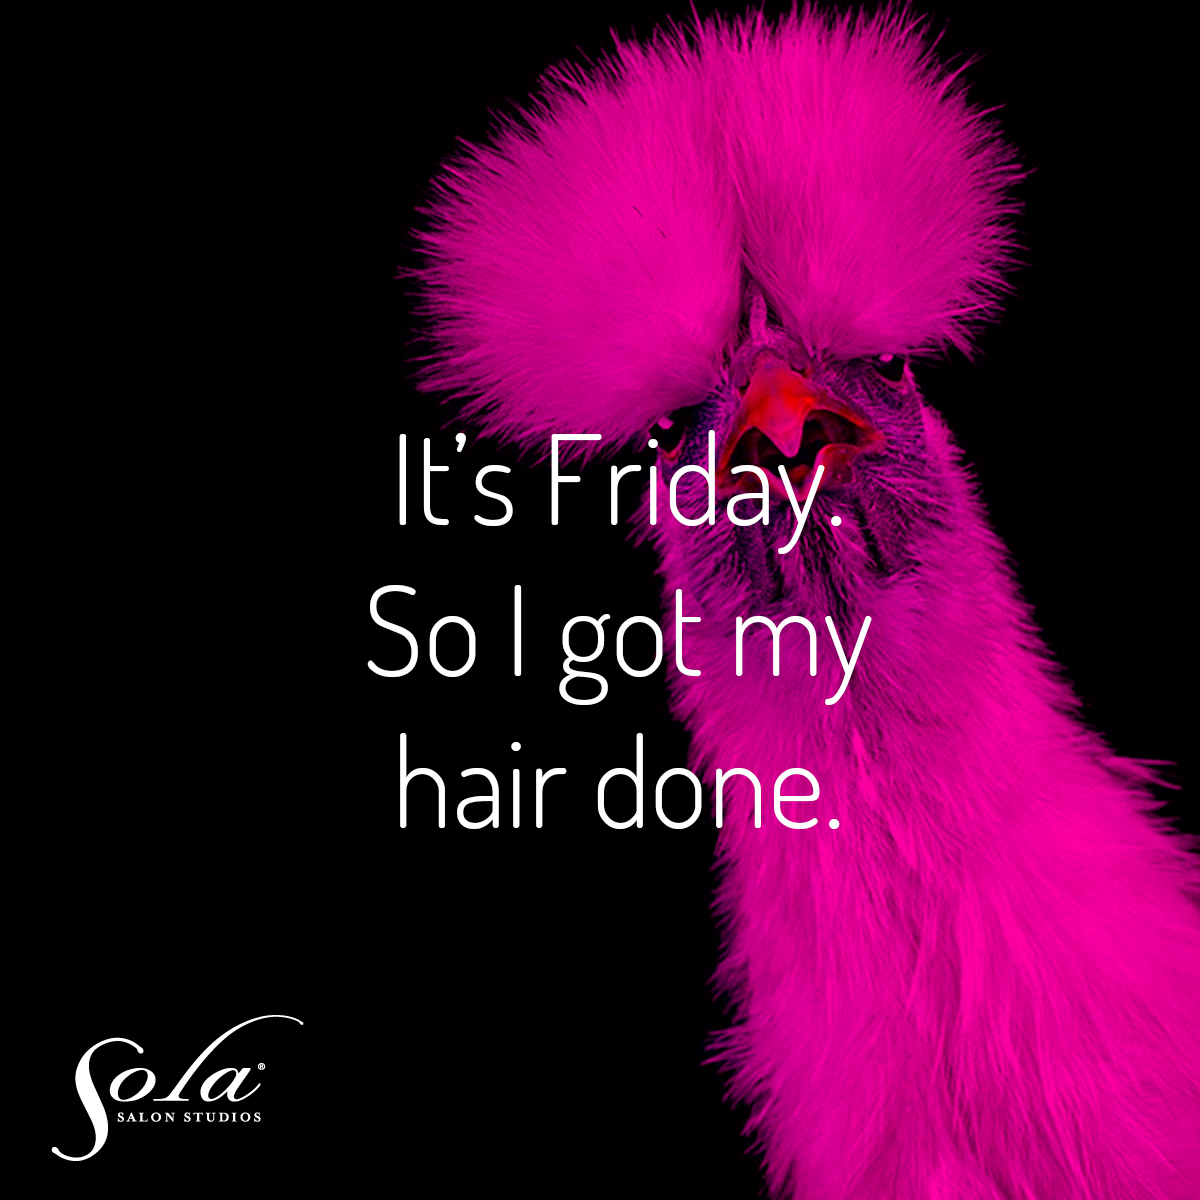 It S Friday So I Got My Hair Done Friday Funny Salon Humor Salon Humor Friday Quotes Funny Friday Humor